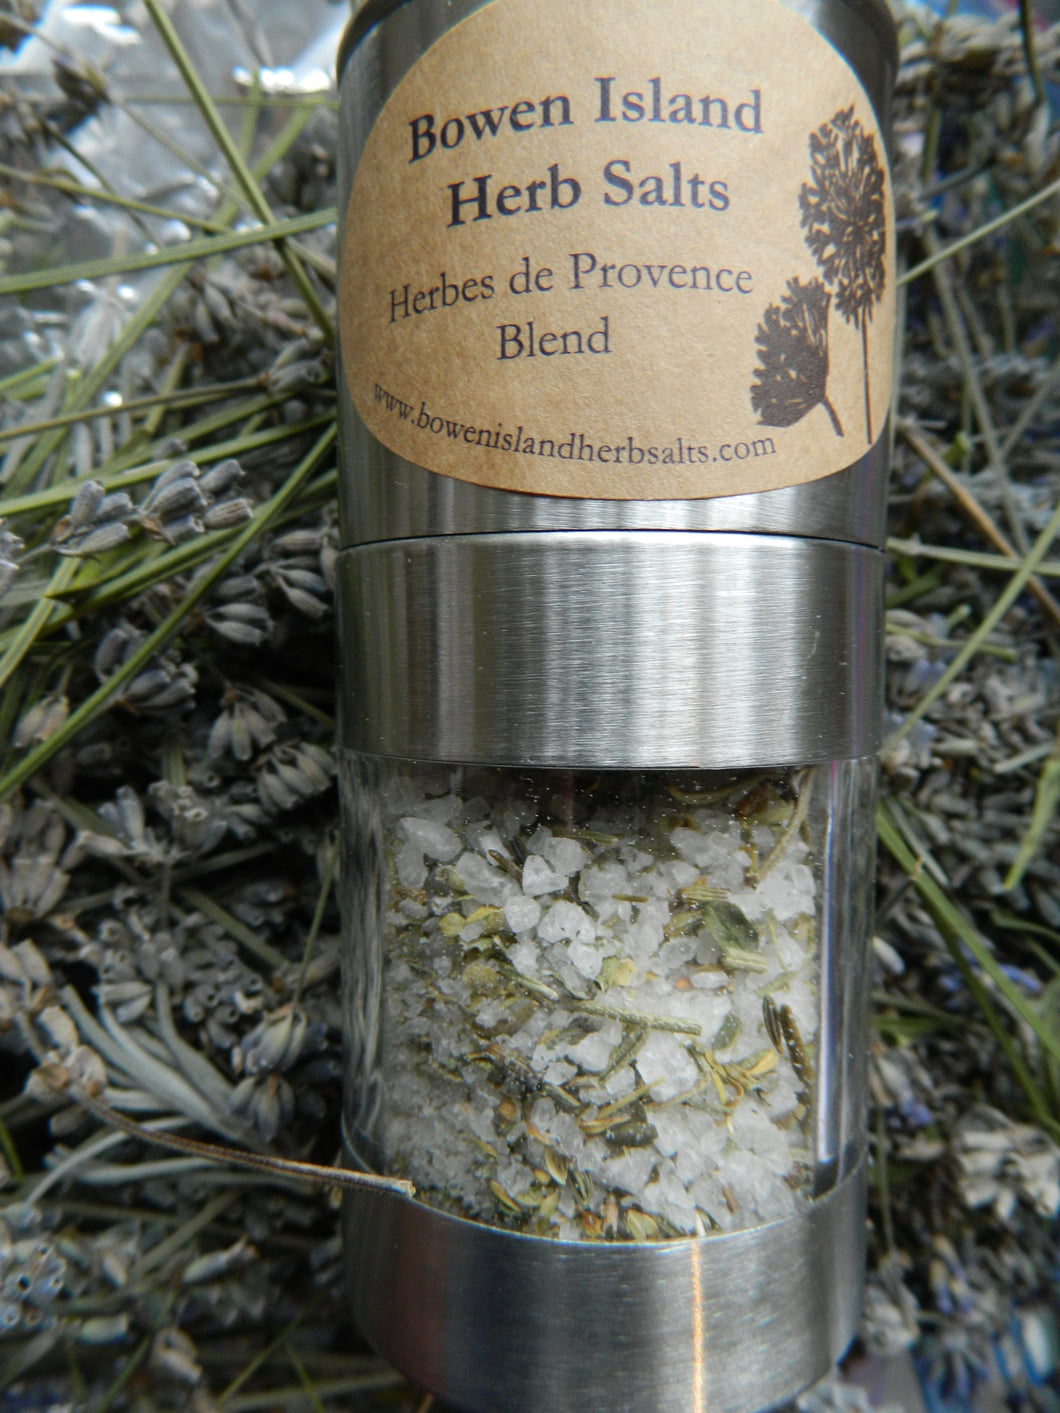 Herb Salt - Herbs de Provence, Stainless Steel Mill